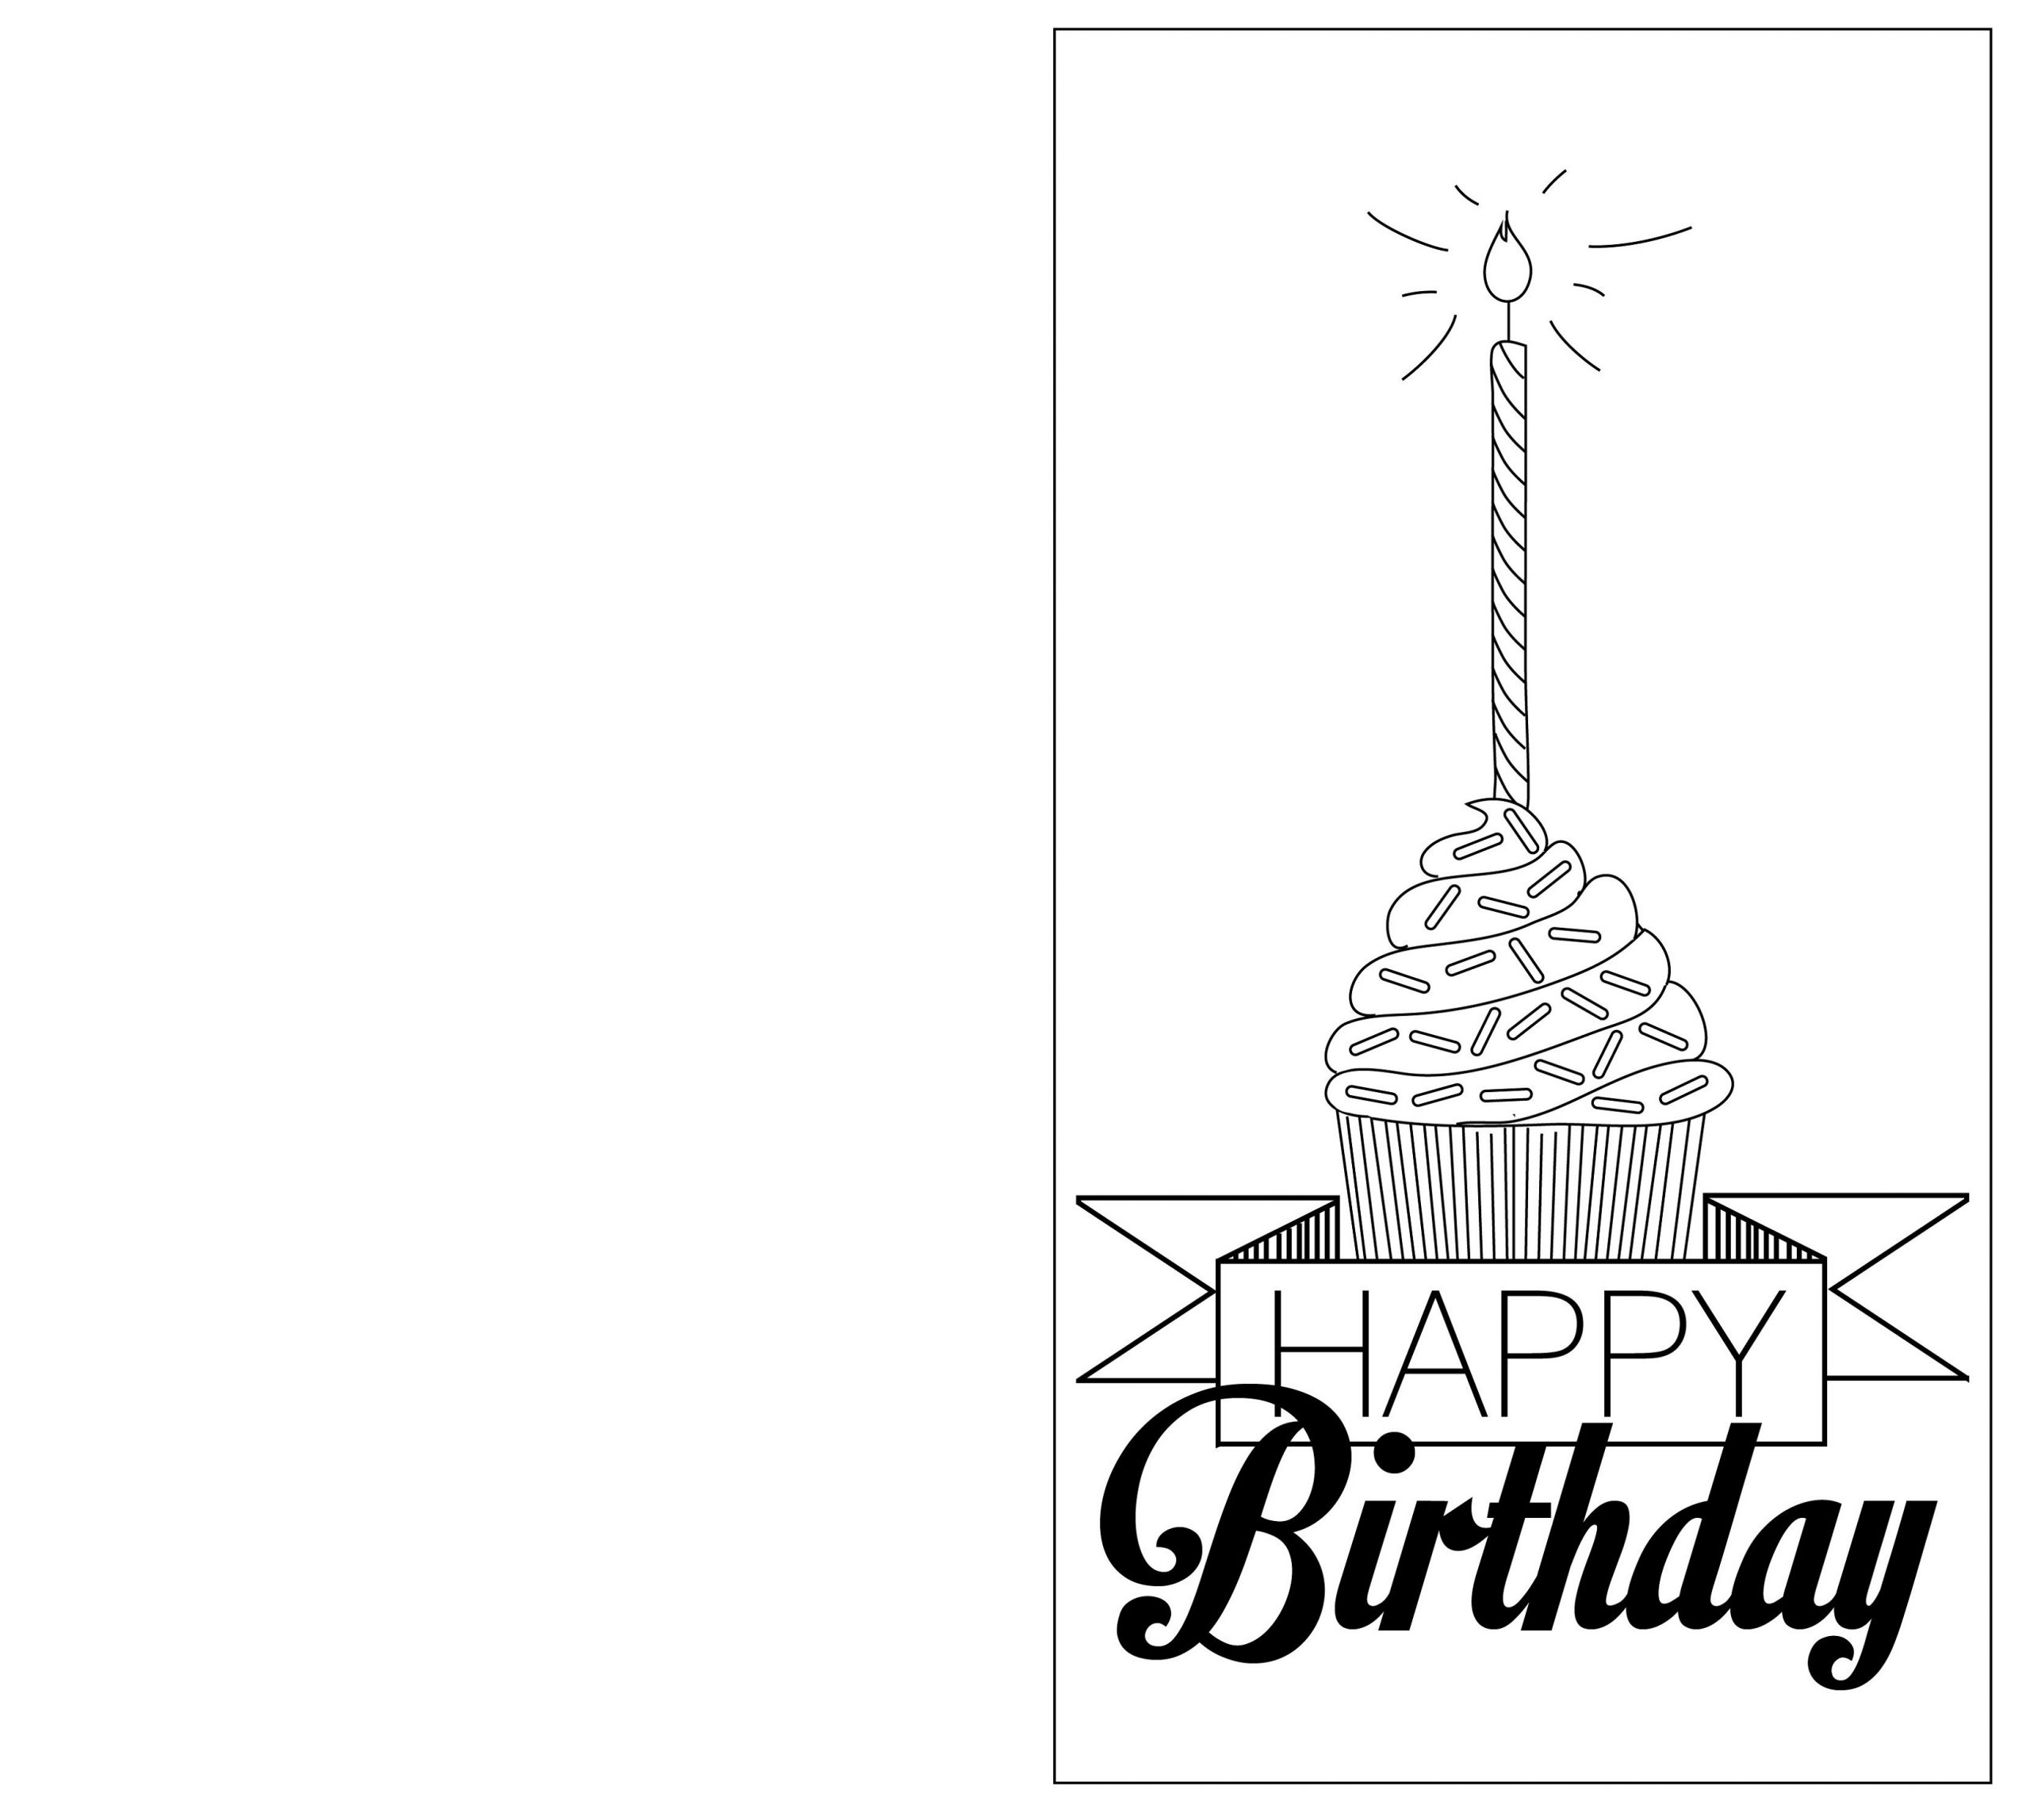 Birthday Card Free Printables